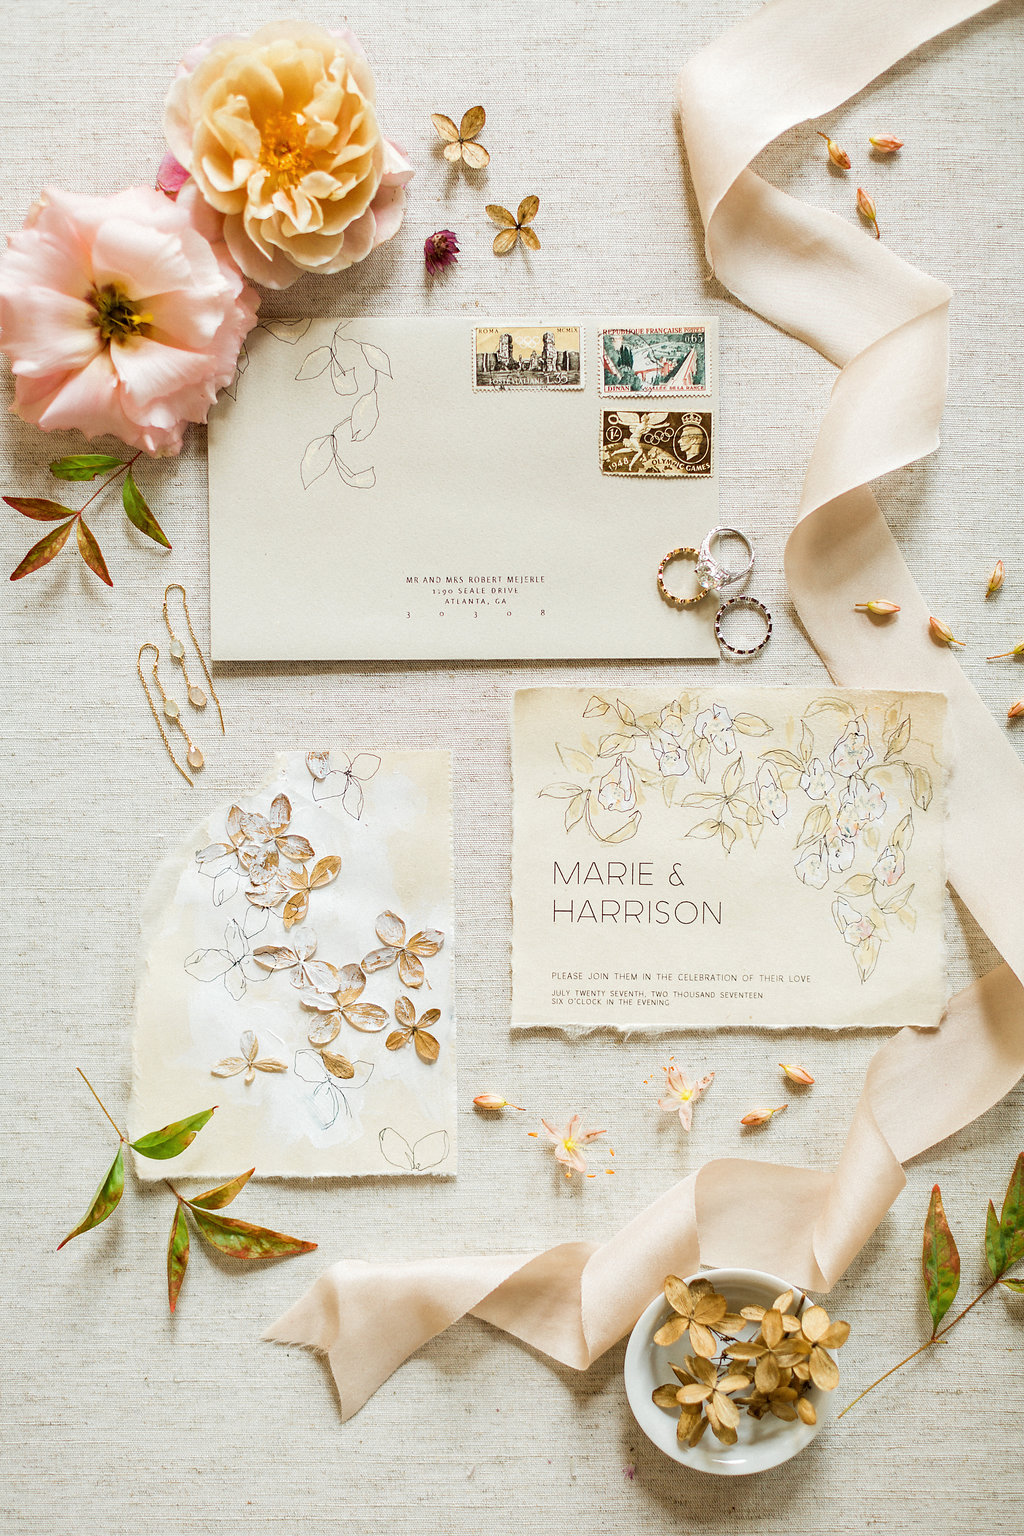 romantic old world inspired wedding invitations - https://ruffledblog.com/cloudy-day-wedding-inspiration-with-a-hand-painted-bridal-gown